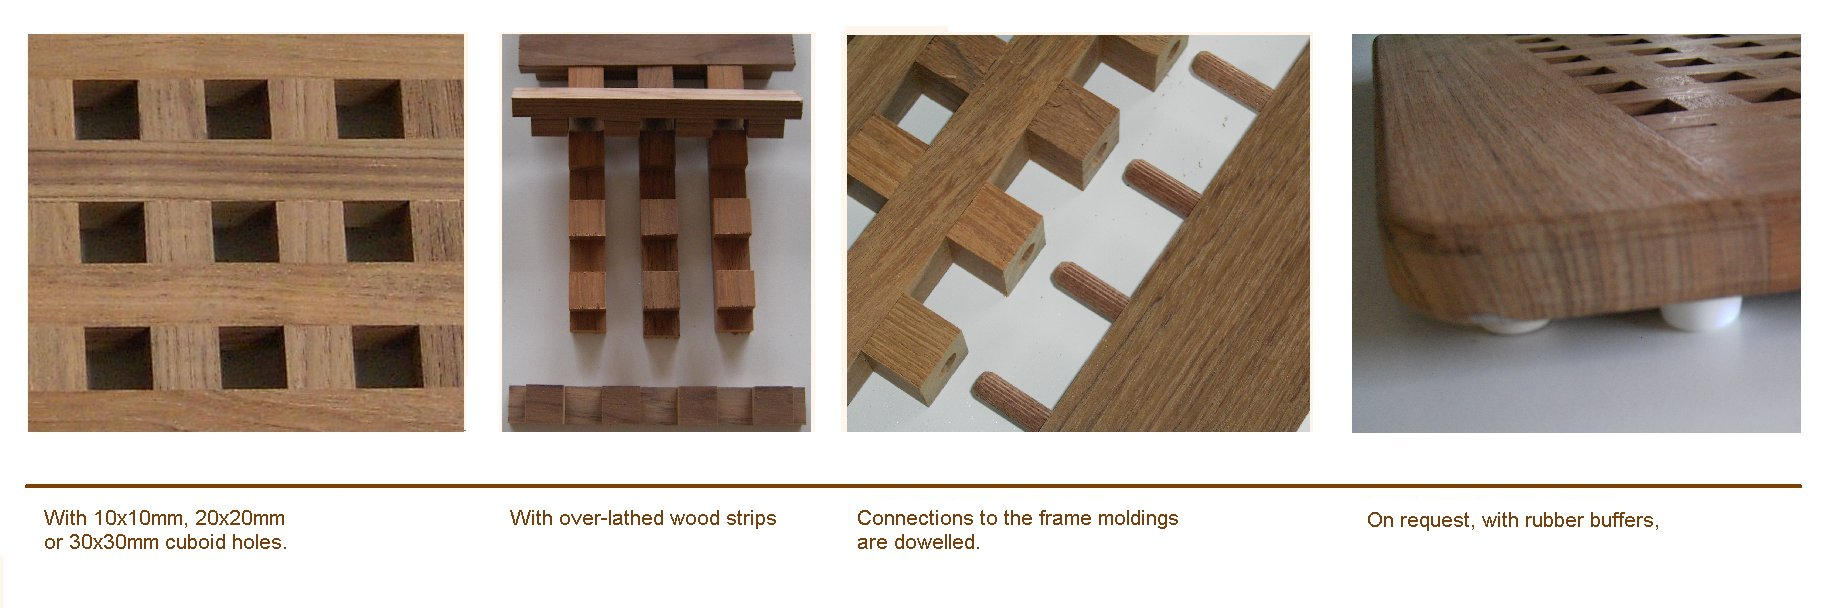 view picture, how to produce gratings